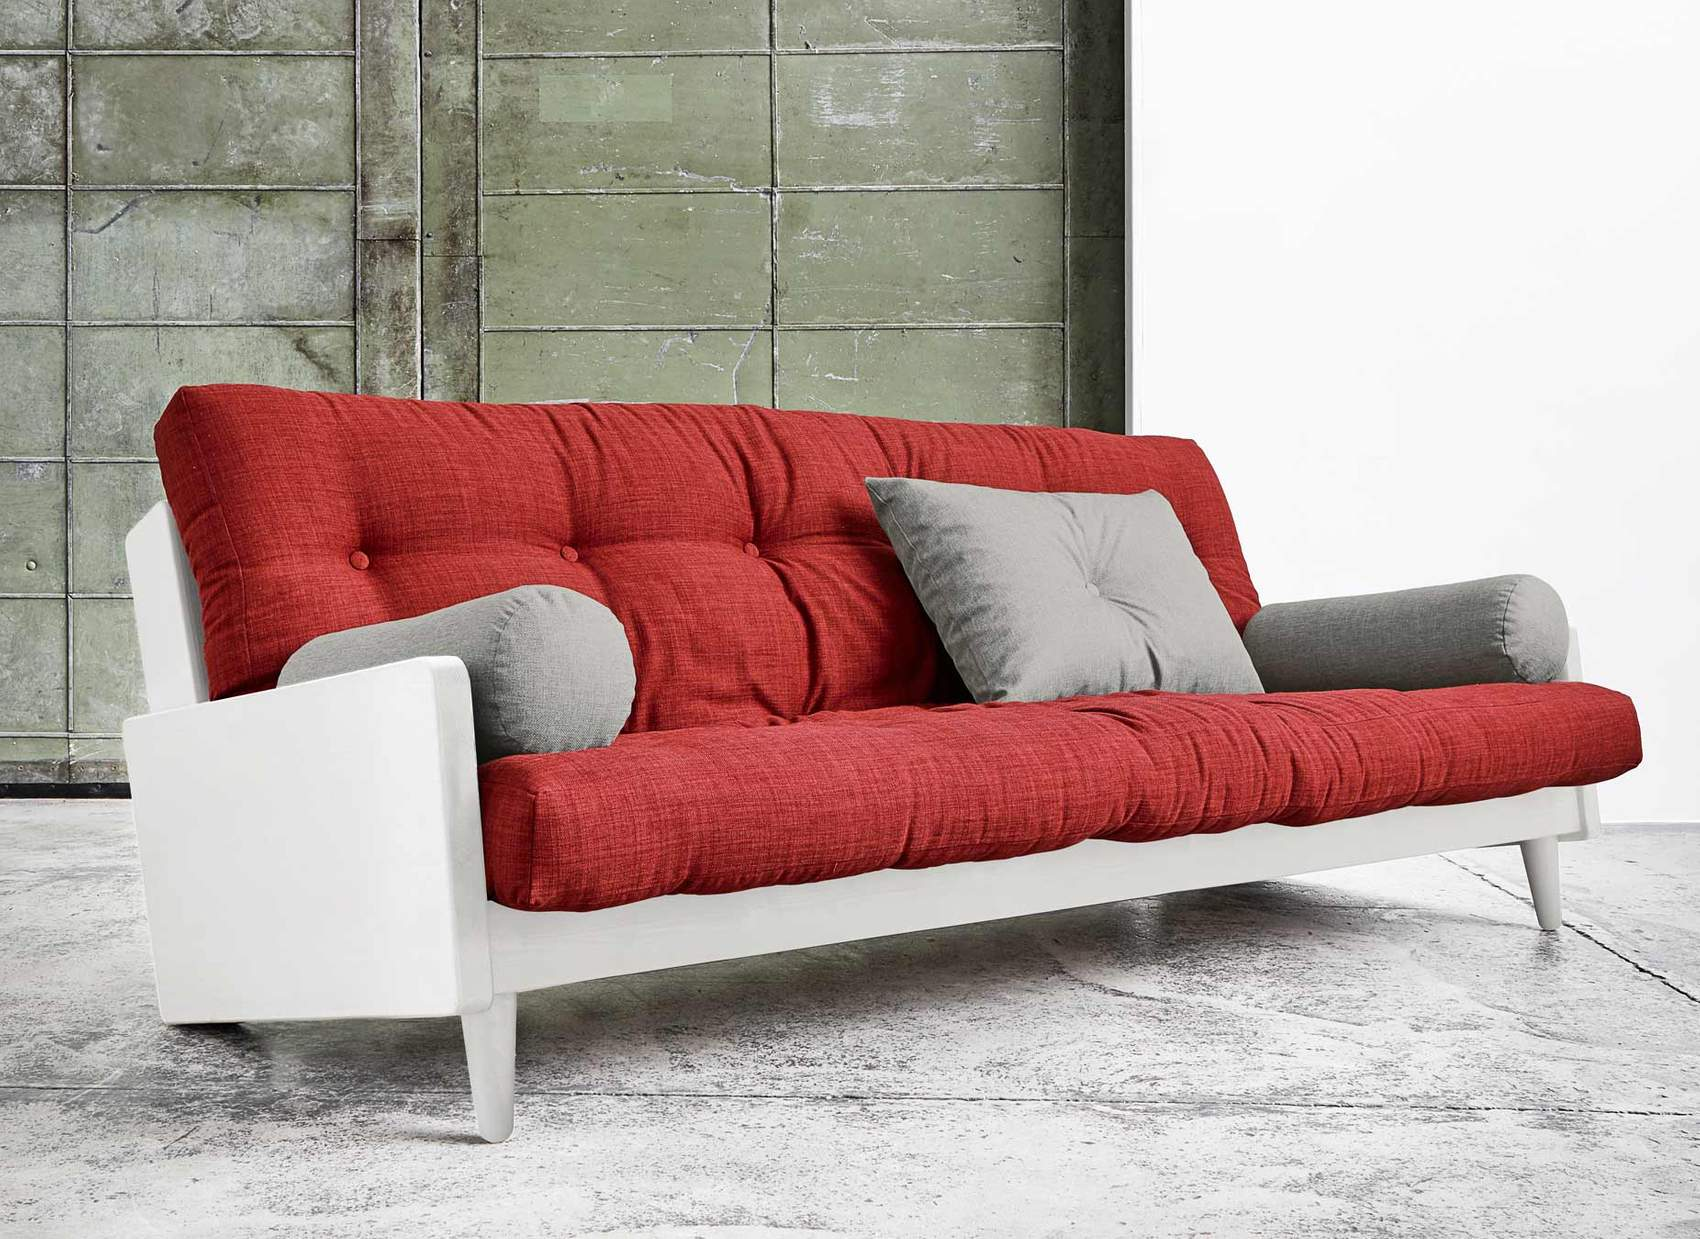 bettsofa indie design sofa kiefer wei mit klappbarer r ckenlehne. Black Bedroom Furniture Sets. Home Design Ideas